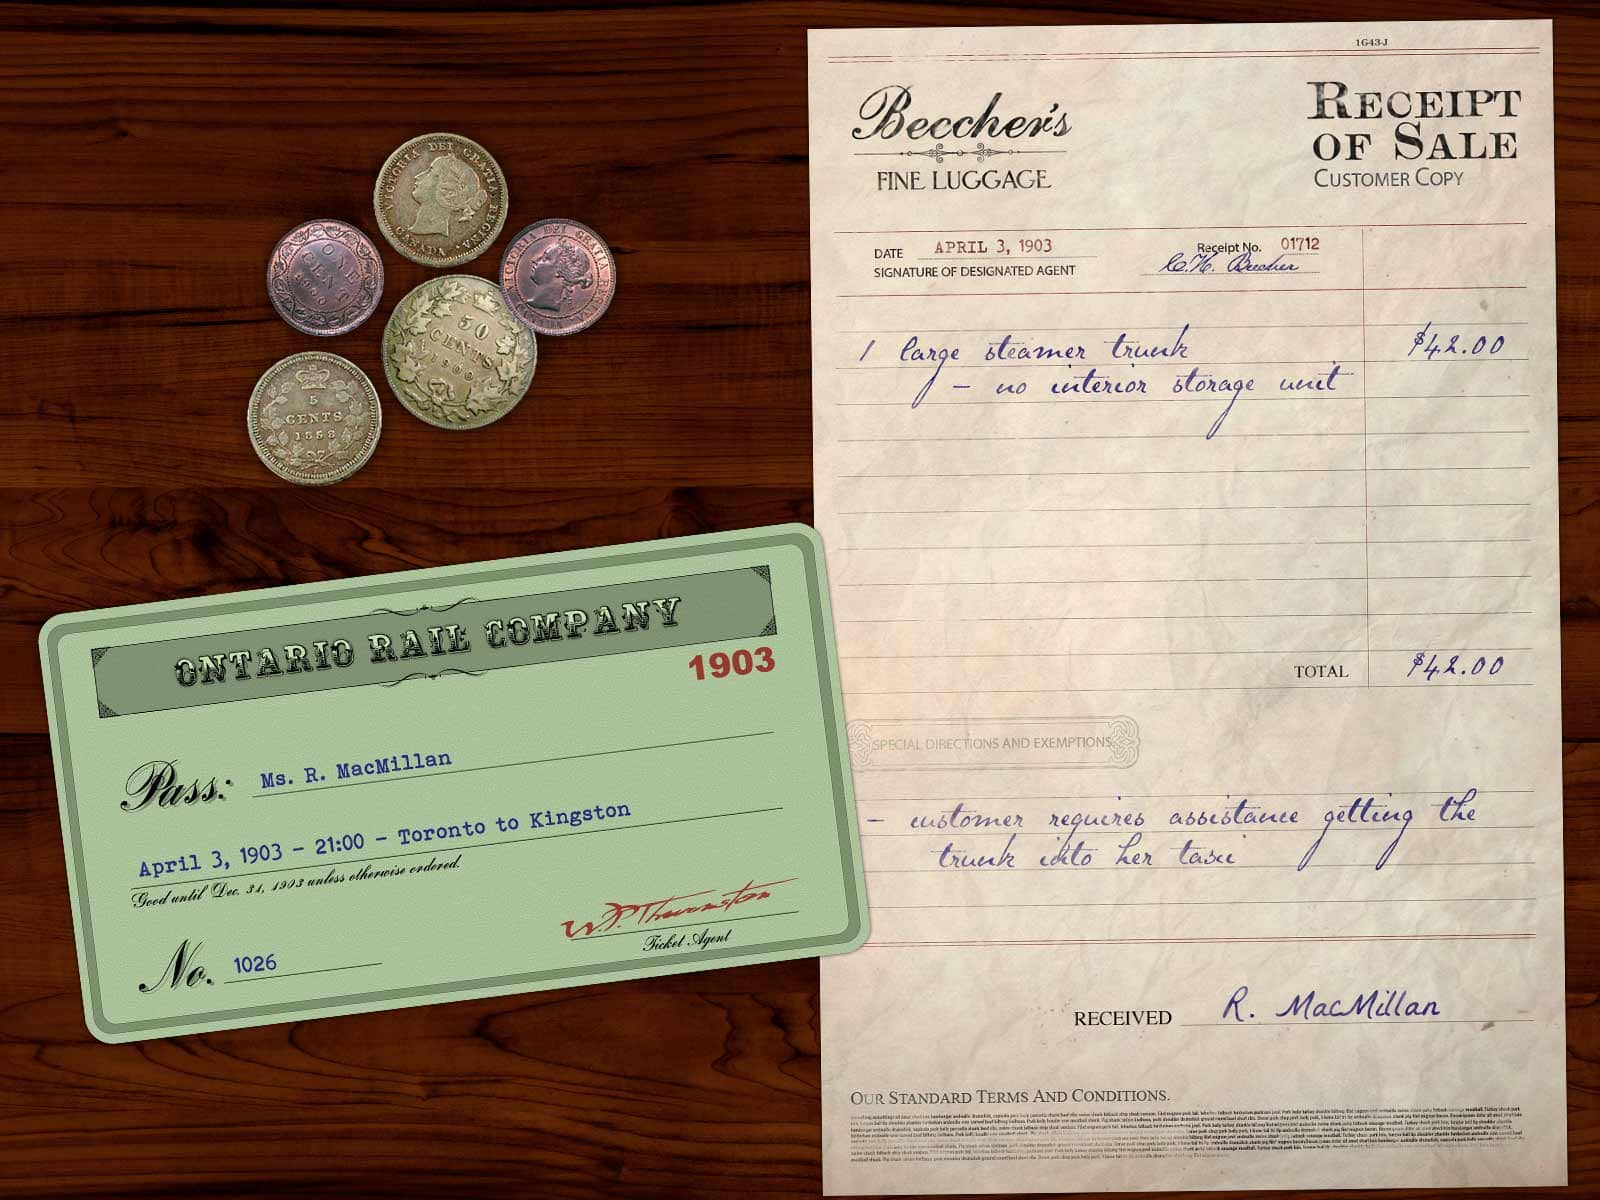 The contents of Rachel MacMillans purse include a train ticket from Toronto to Kingston, a receipt for luggage from a store called Beecher's, and some coins.